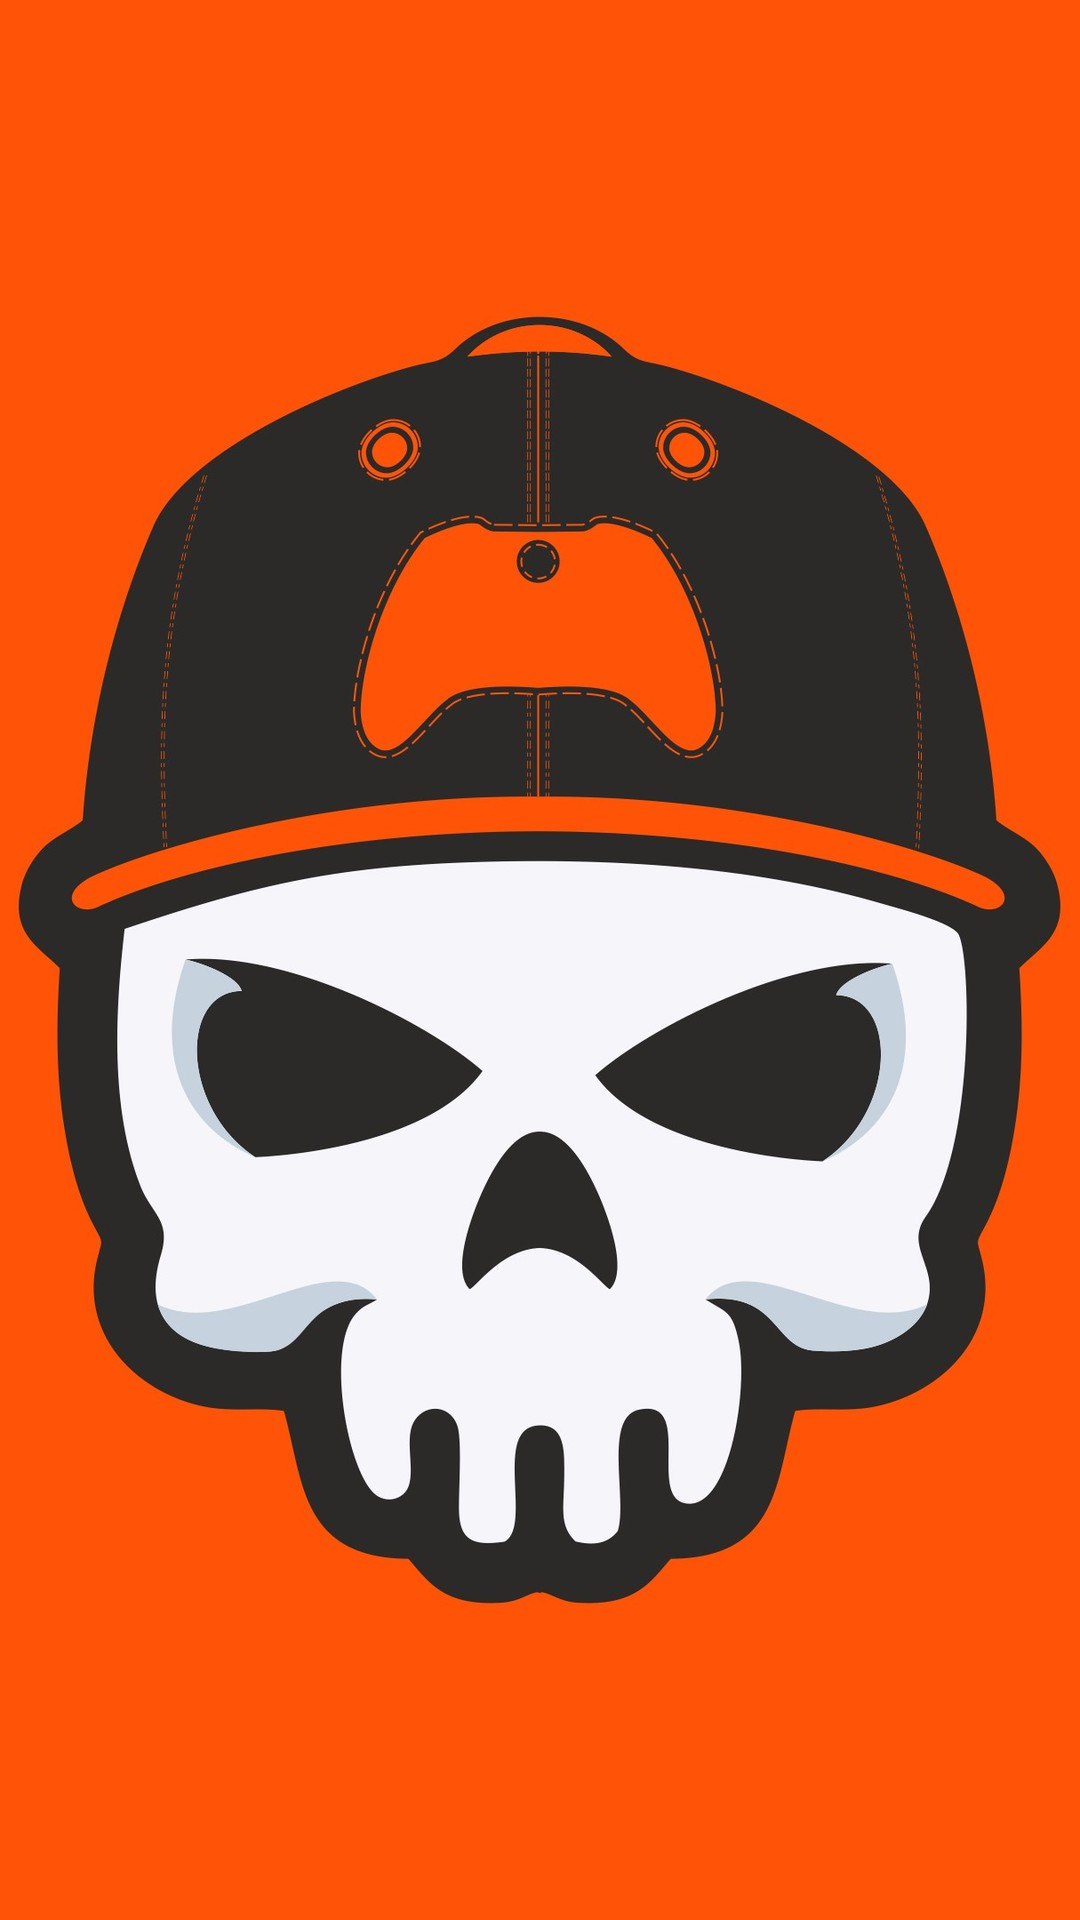 Gamer Skull iPhone Wallpaper